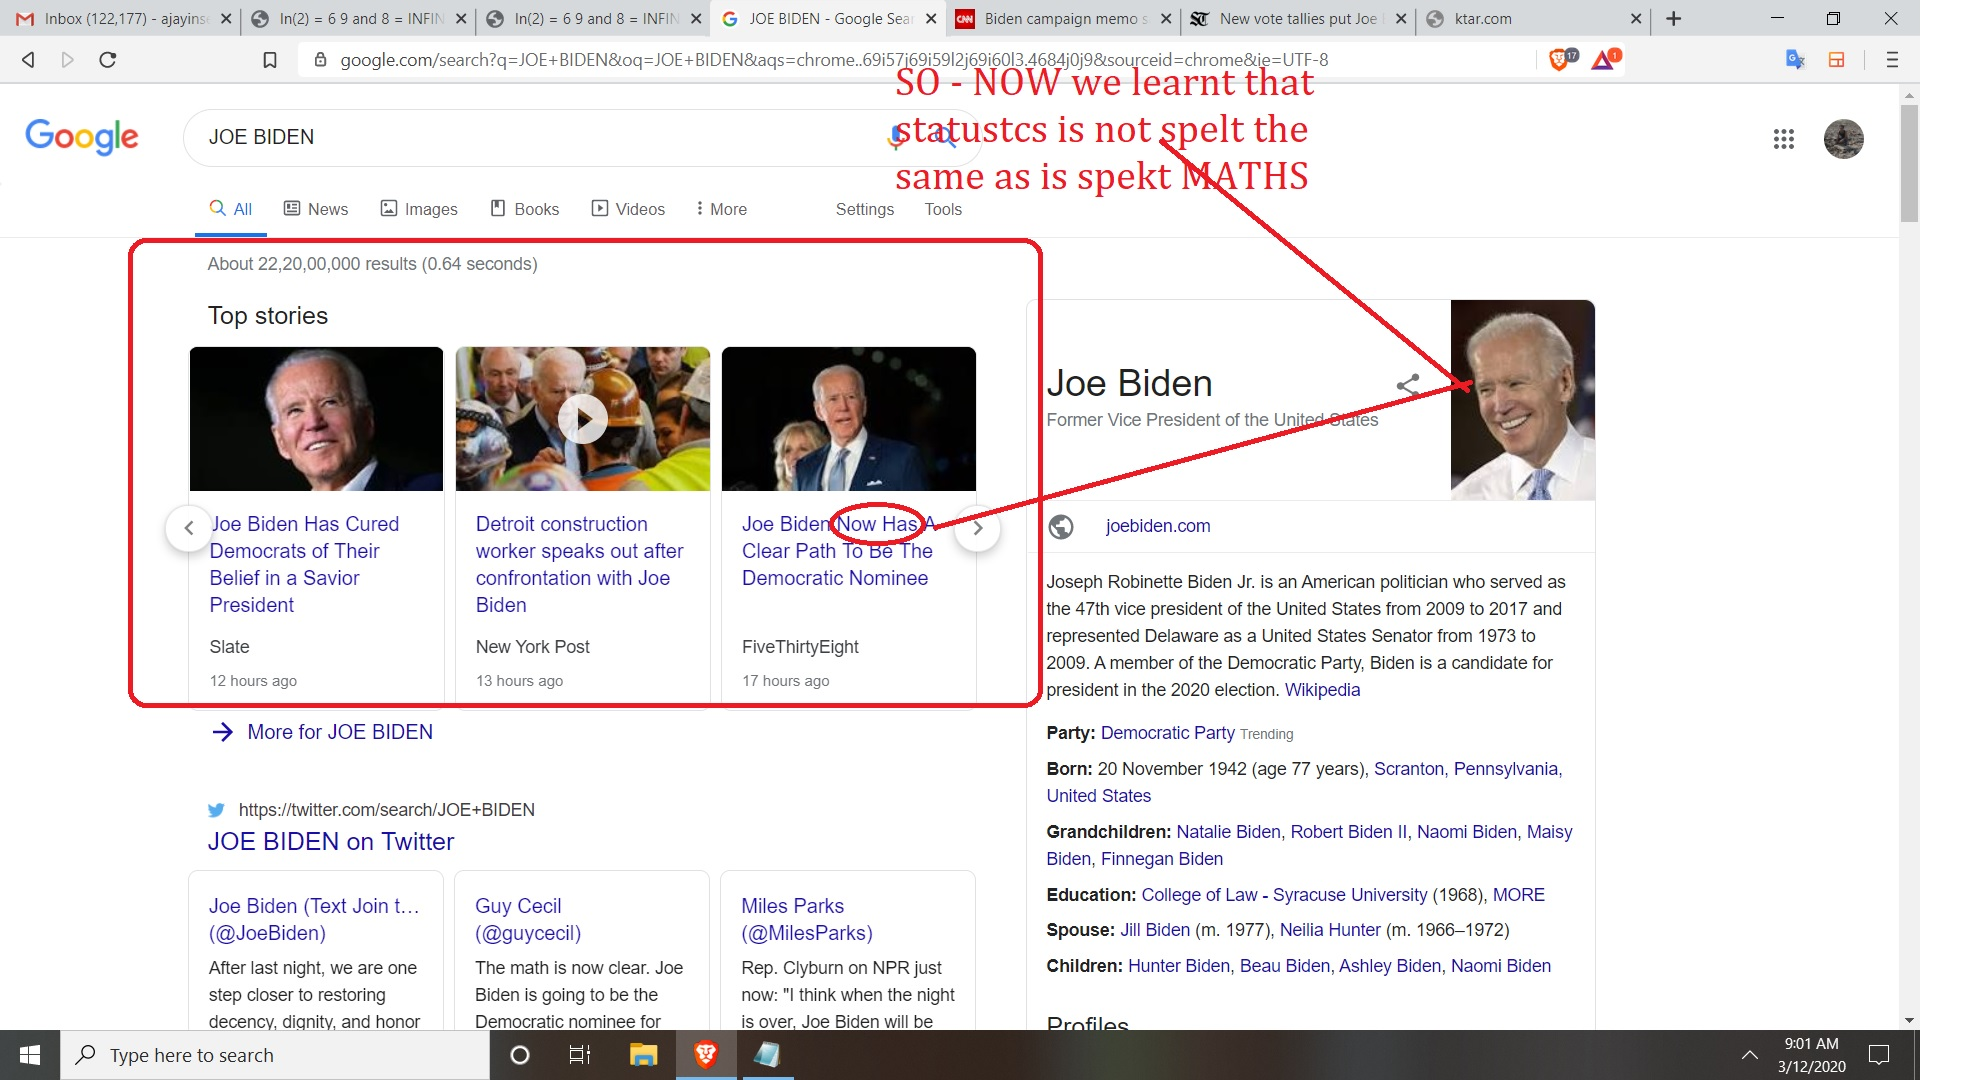 subject jode biden and nate silver and whats the difference and role of maths versus sattistics